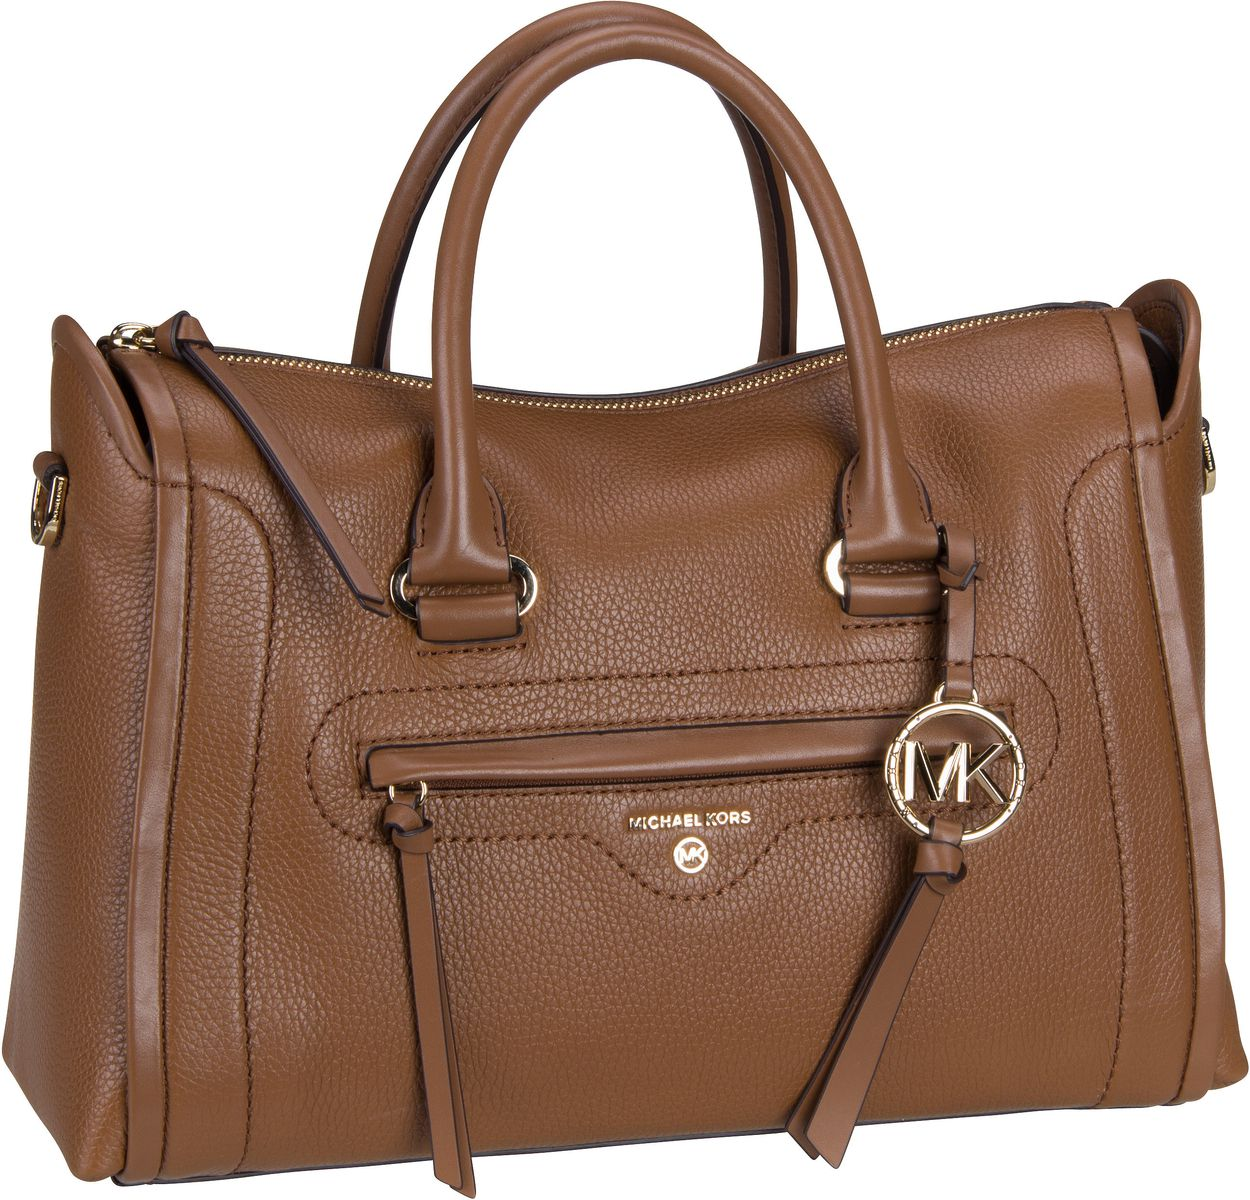 Michael Kors Handtasche Carine Medium Satchel Luggage